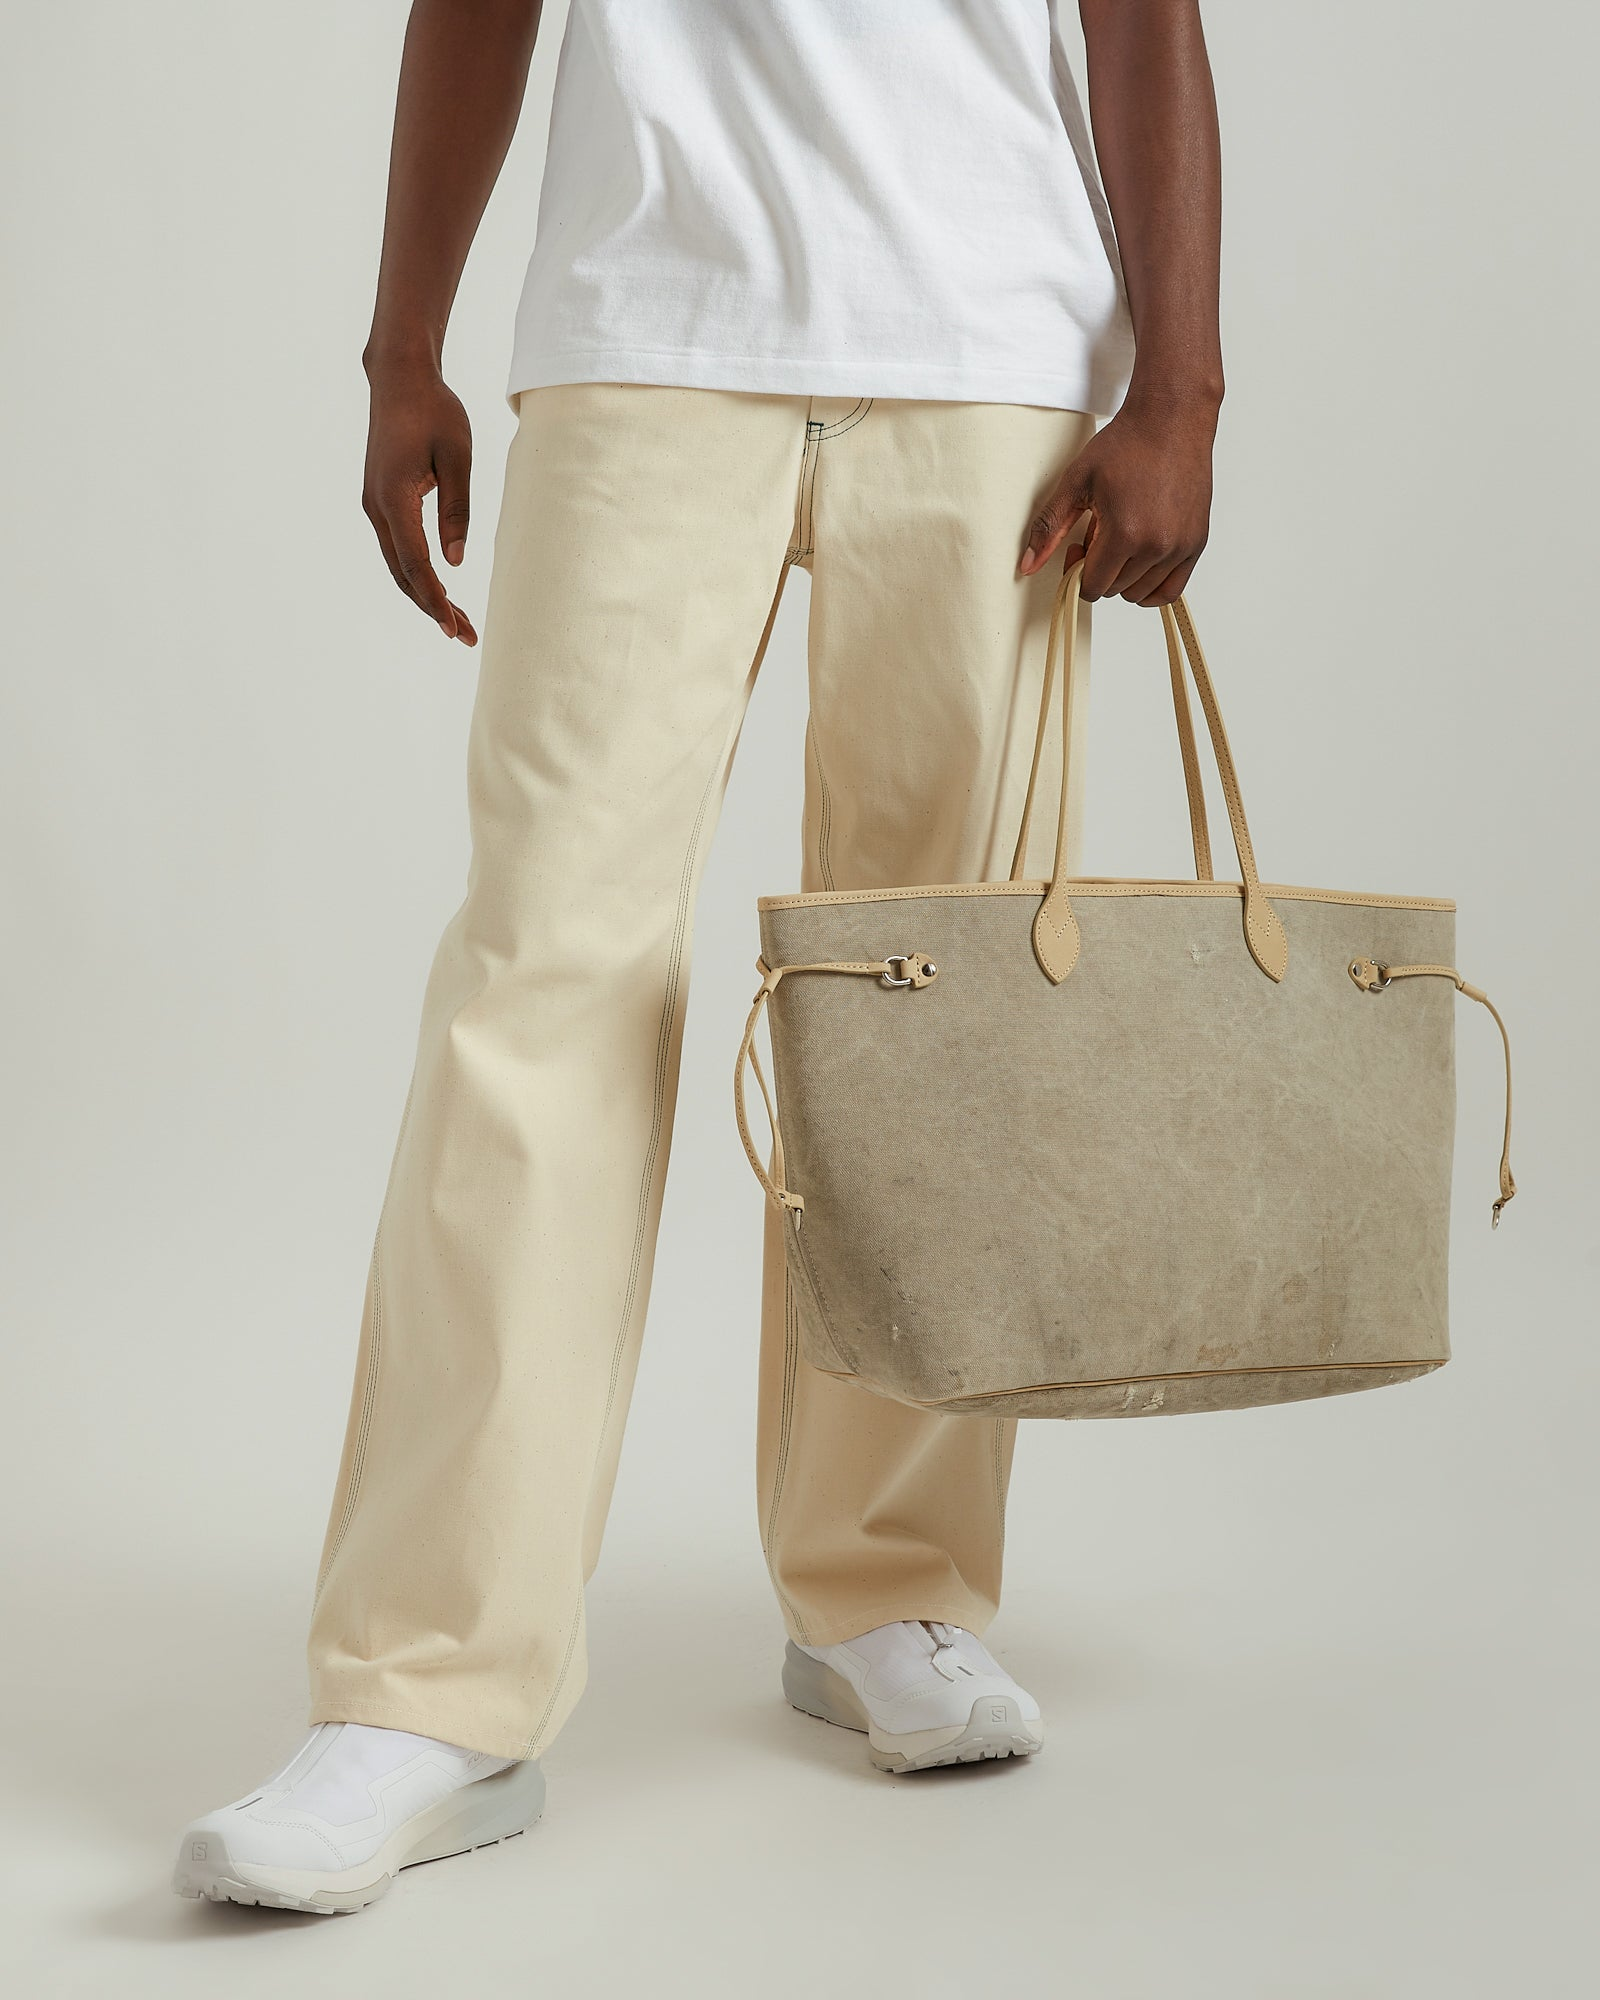 Roomy Bag in White